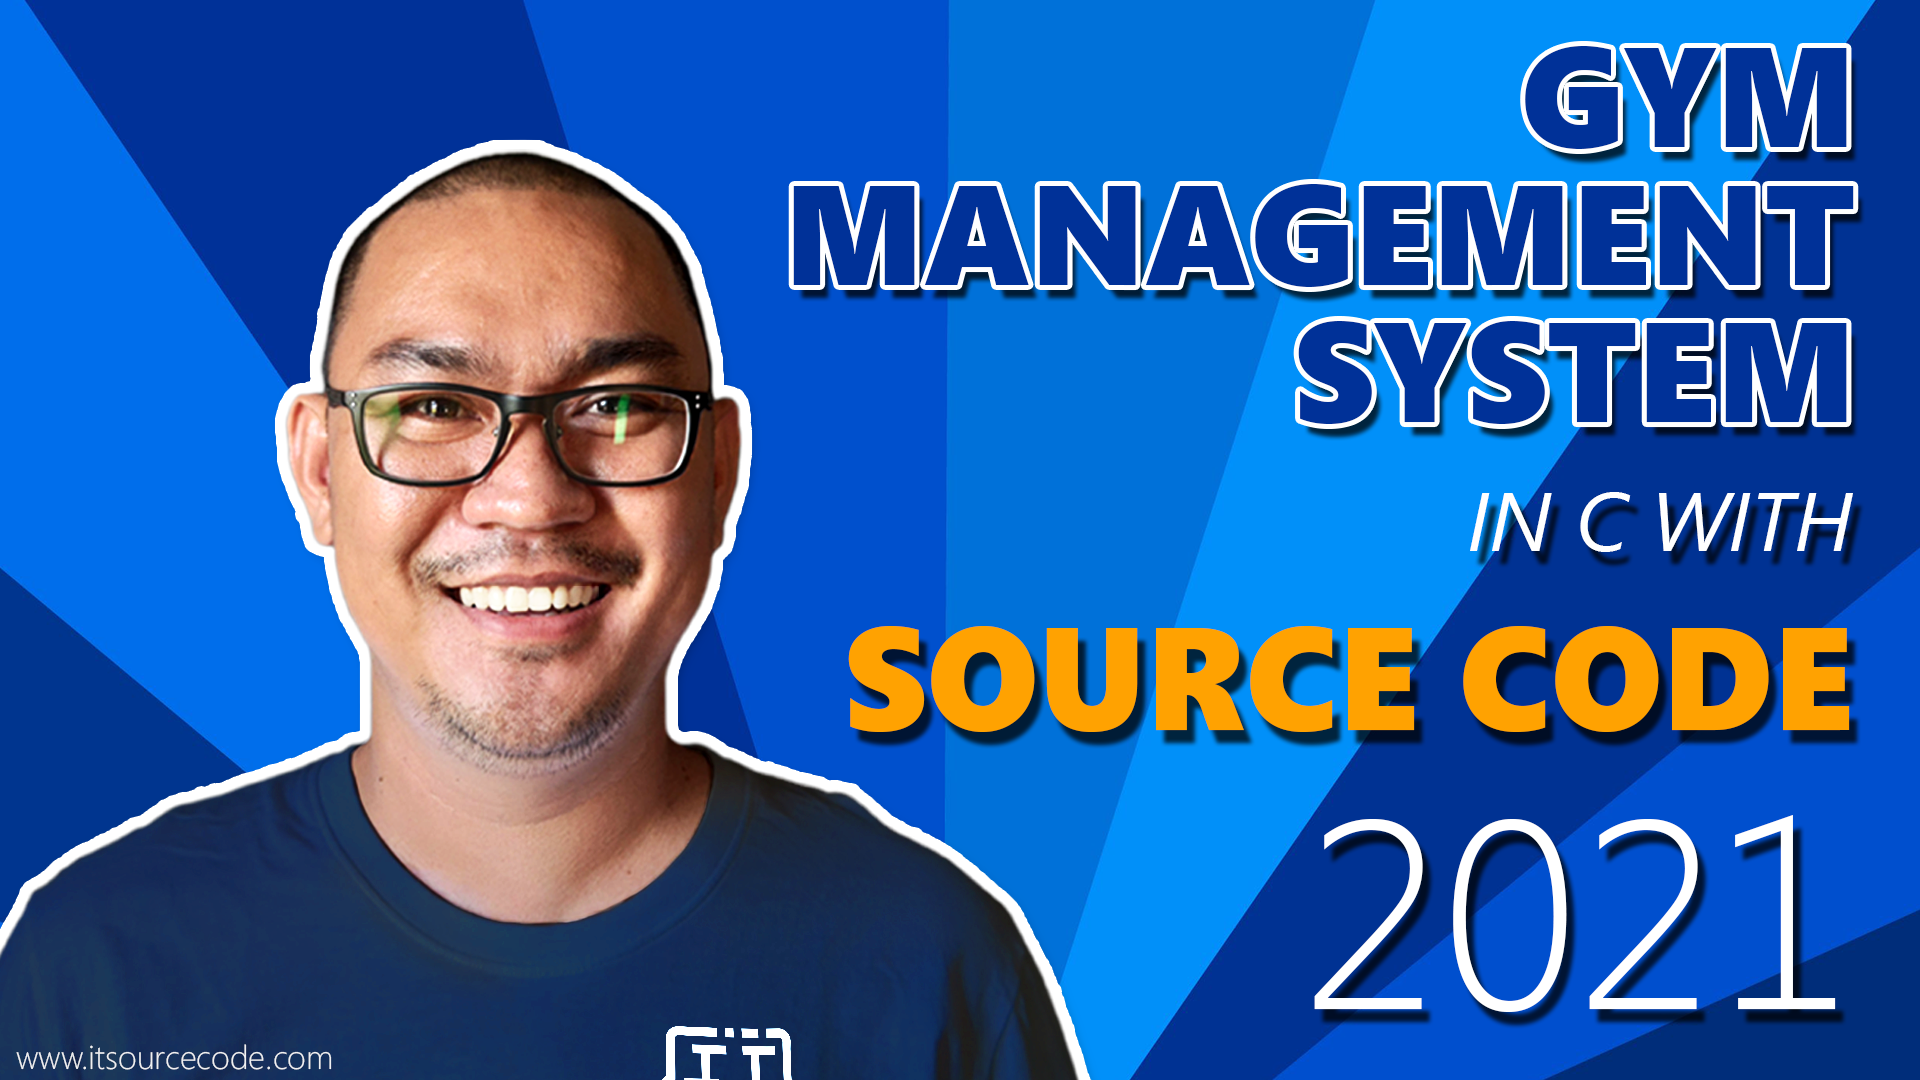 Gym Management System In C With Source Code